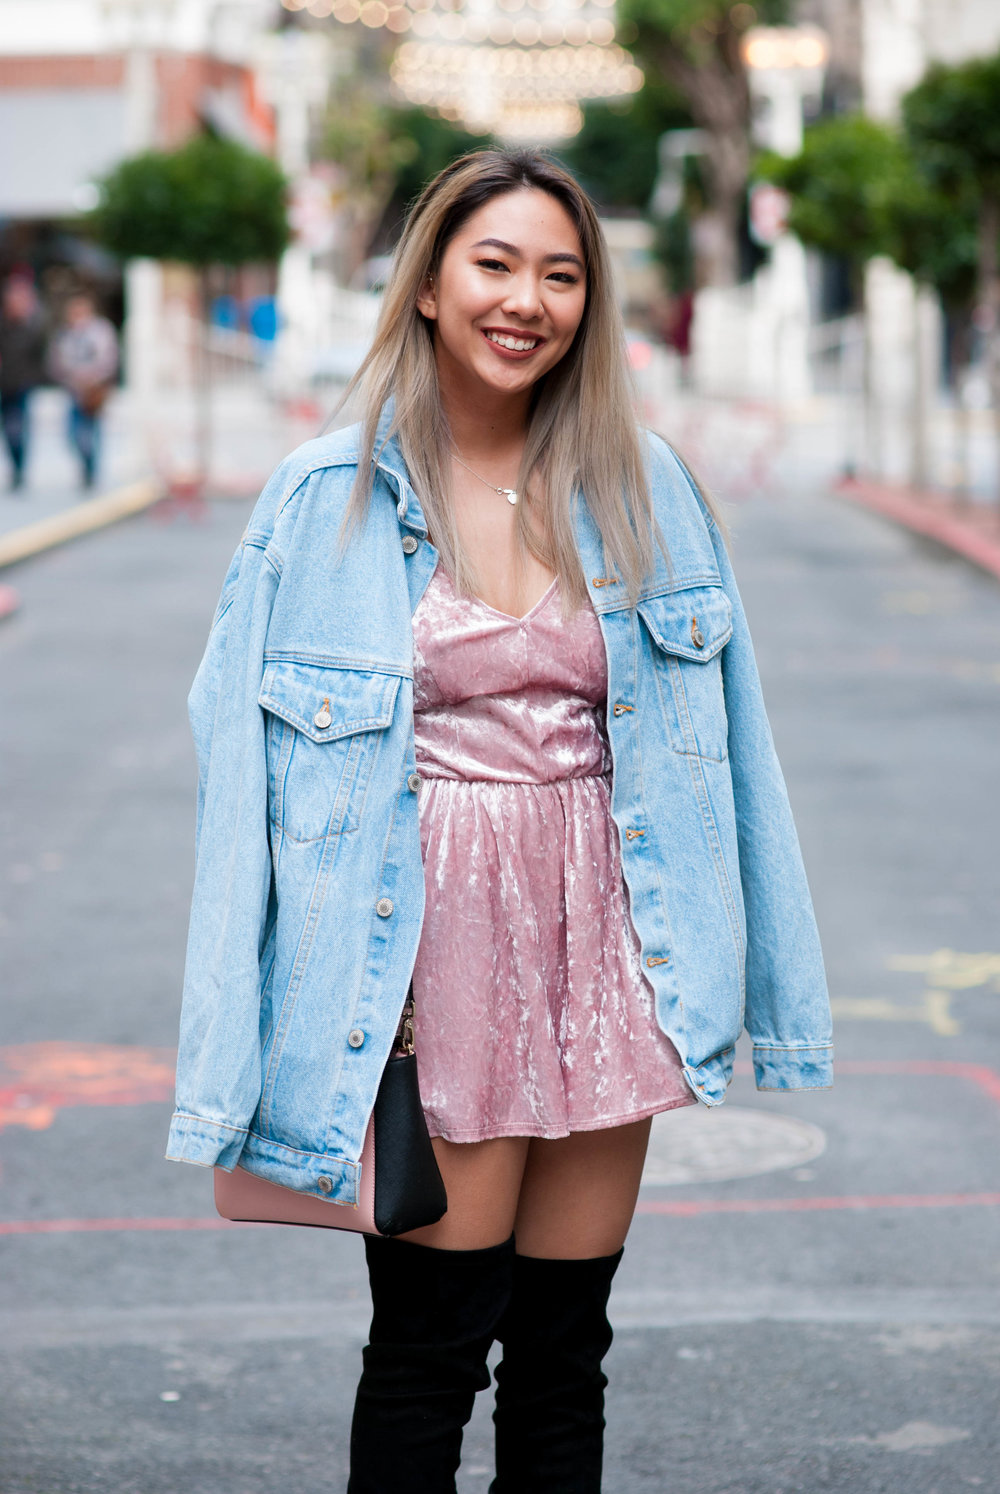 Oversized Light Wash Jean Jacket (One Size) - $40   Purchased from Brandy Melville USA | Out of Stock, check local stores, unavailable online   LA Hearts Crushed Velvet Romper in Pink (Size M) - $35.95   Purchased at  PacSun  | Out of Stock in Pink   LARAH: Knee High Black Dress Boots with Pointy Toes (Size 6 and 1/2) - $129.95*   Purchased at  Steve Madden  | In Stock, on sale for $50*